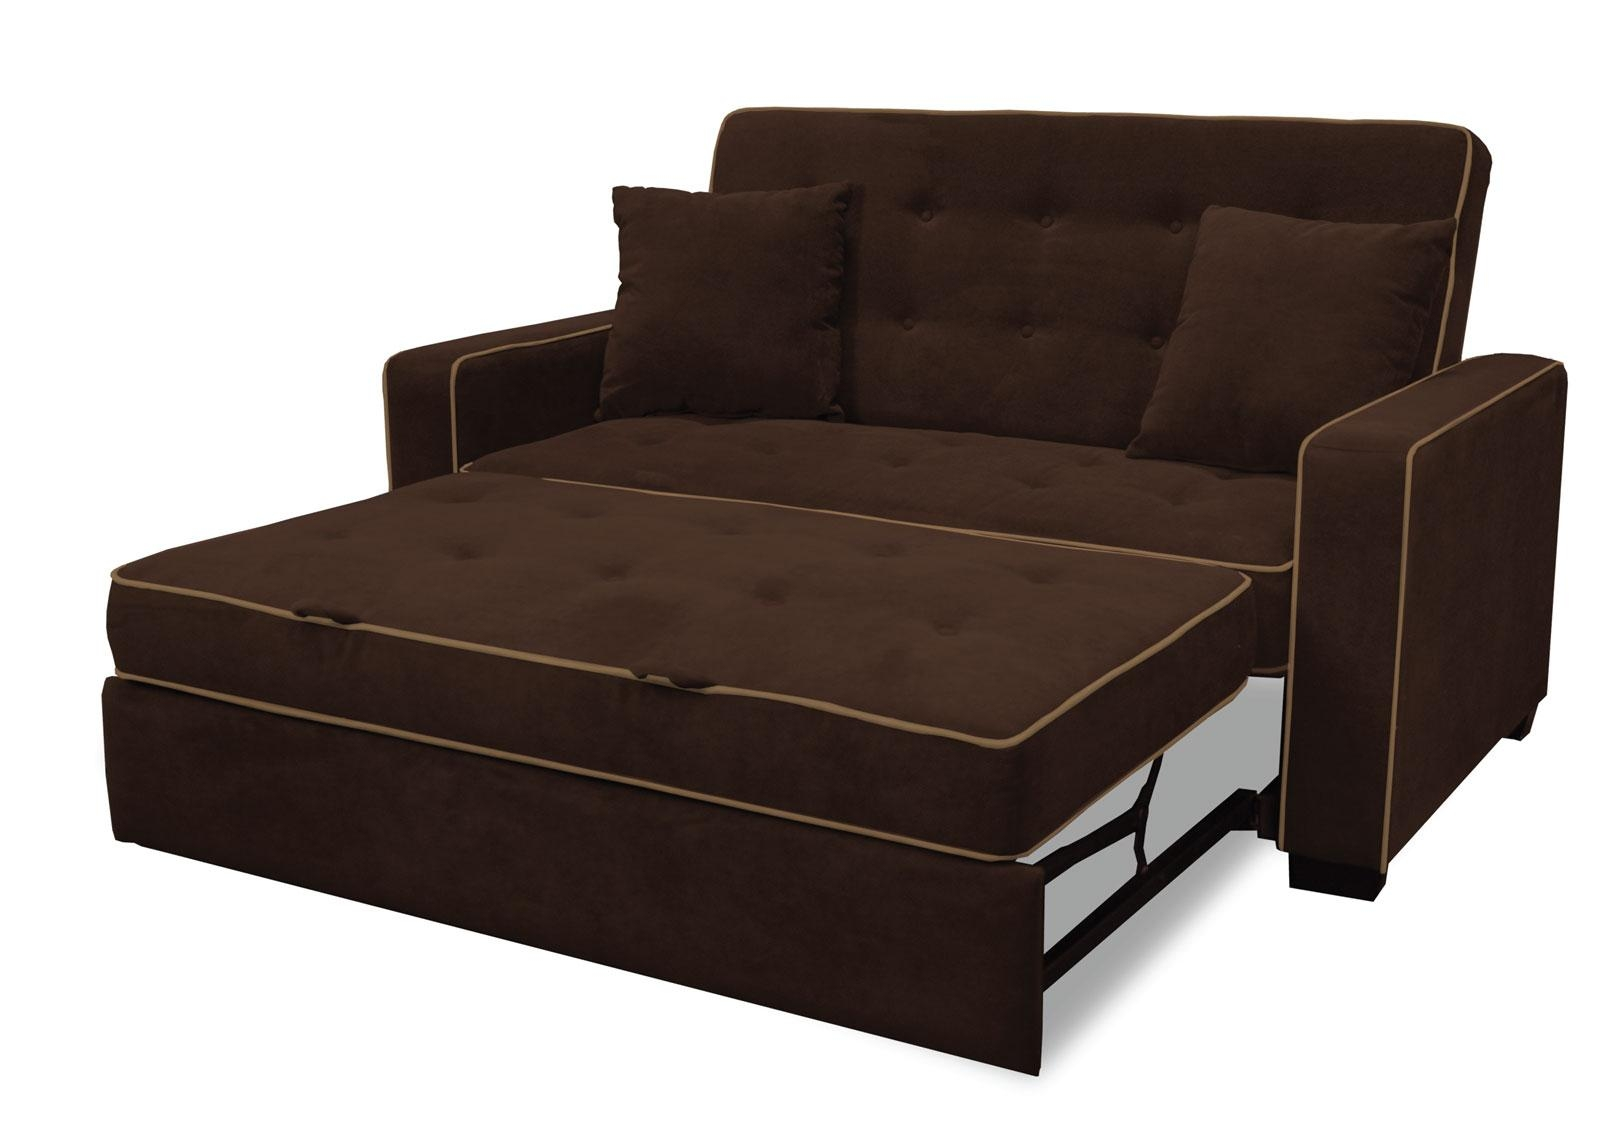 Furniture & Rug: Foldable Couch | Moheda Sofa Bed | Full Size Sofa For Full Size Sofa Sleepers (Image 7 of 21)